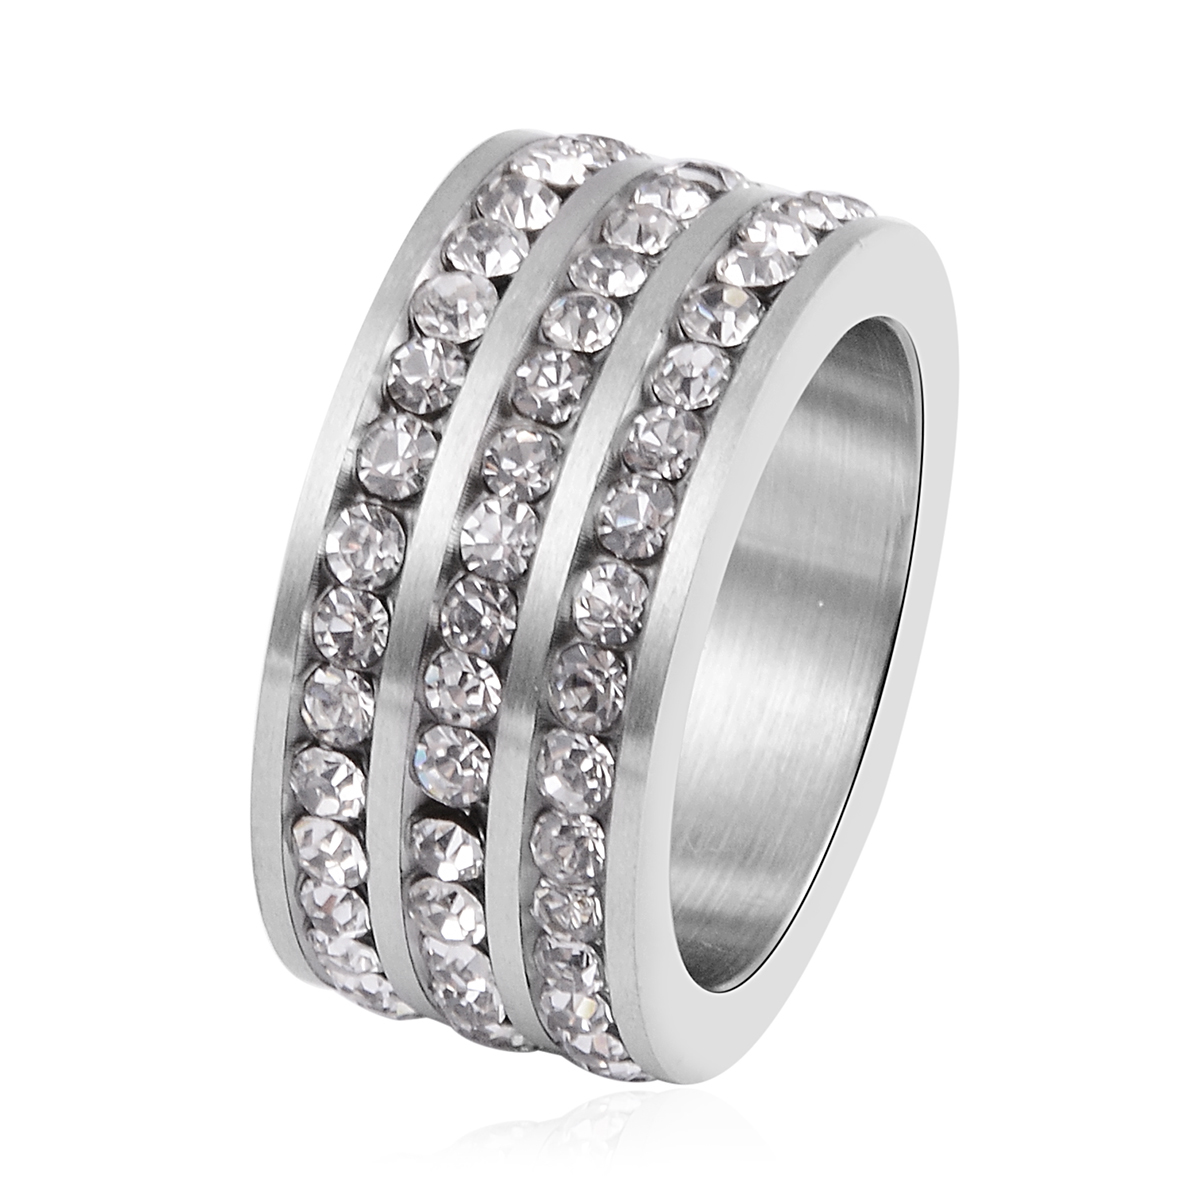 Austrian Crystal Stainless Steel Band Ring (Size 7.0)